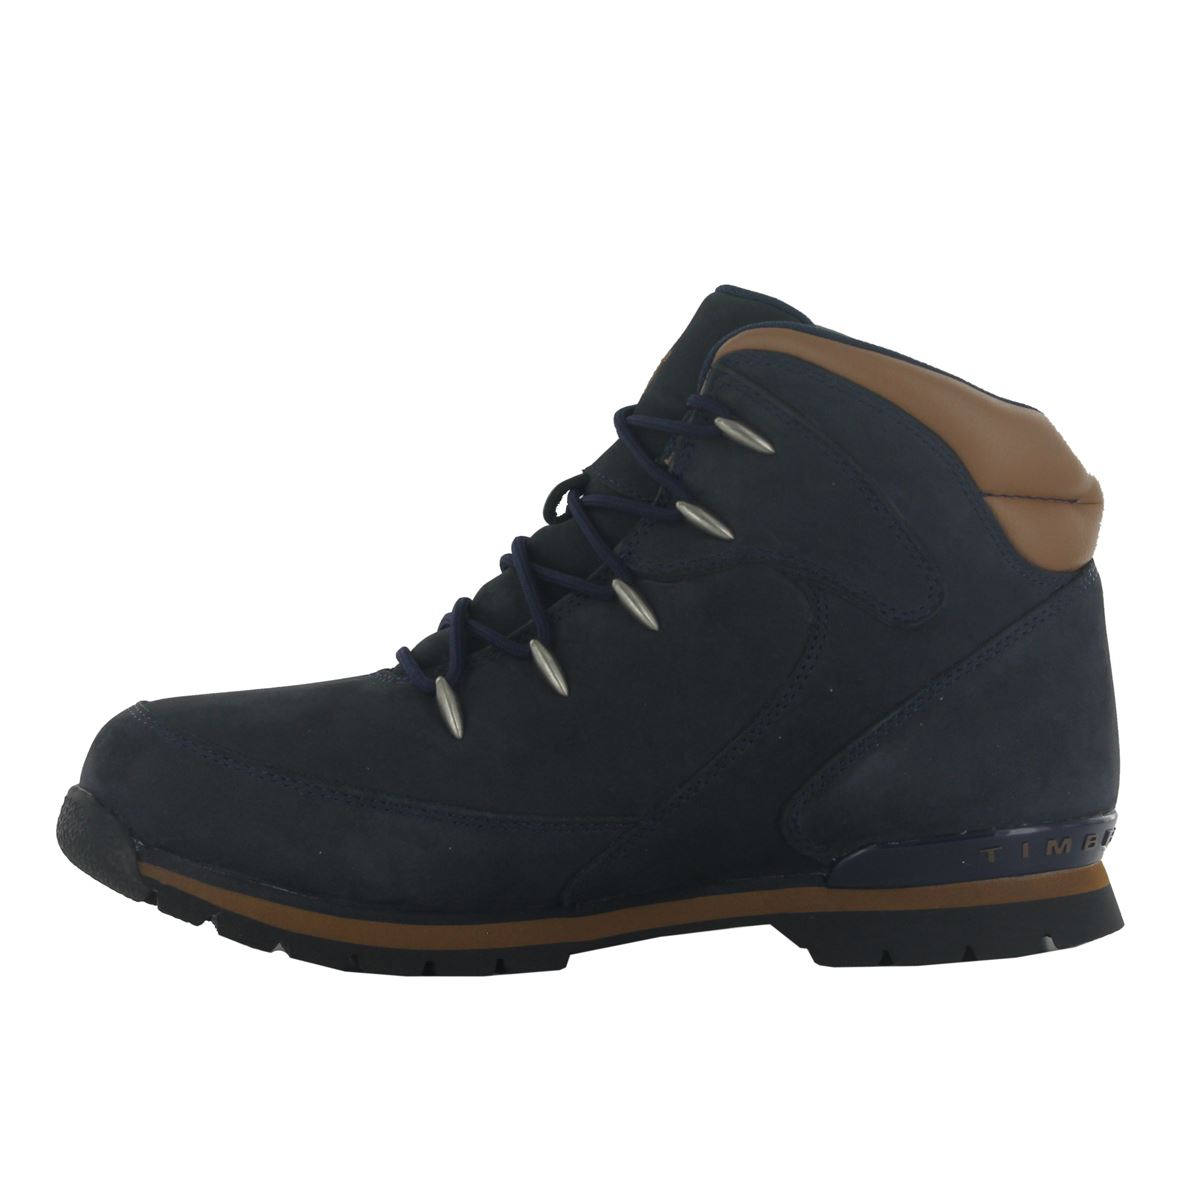 timberland rock suede navy youths boots 3092r m ebay